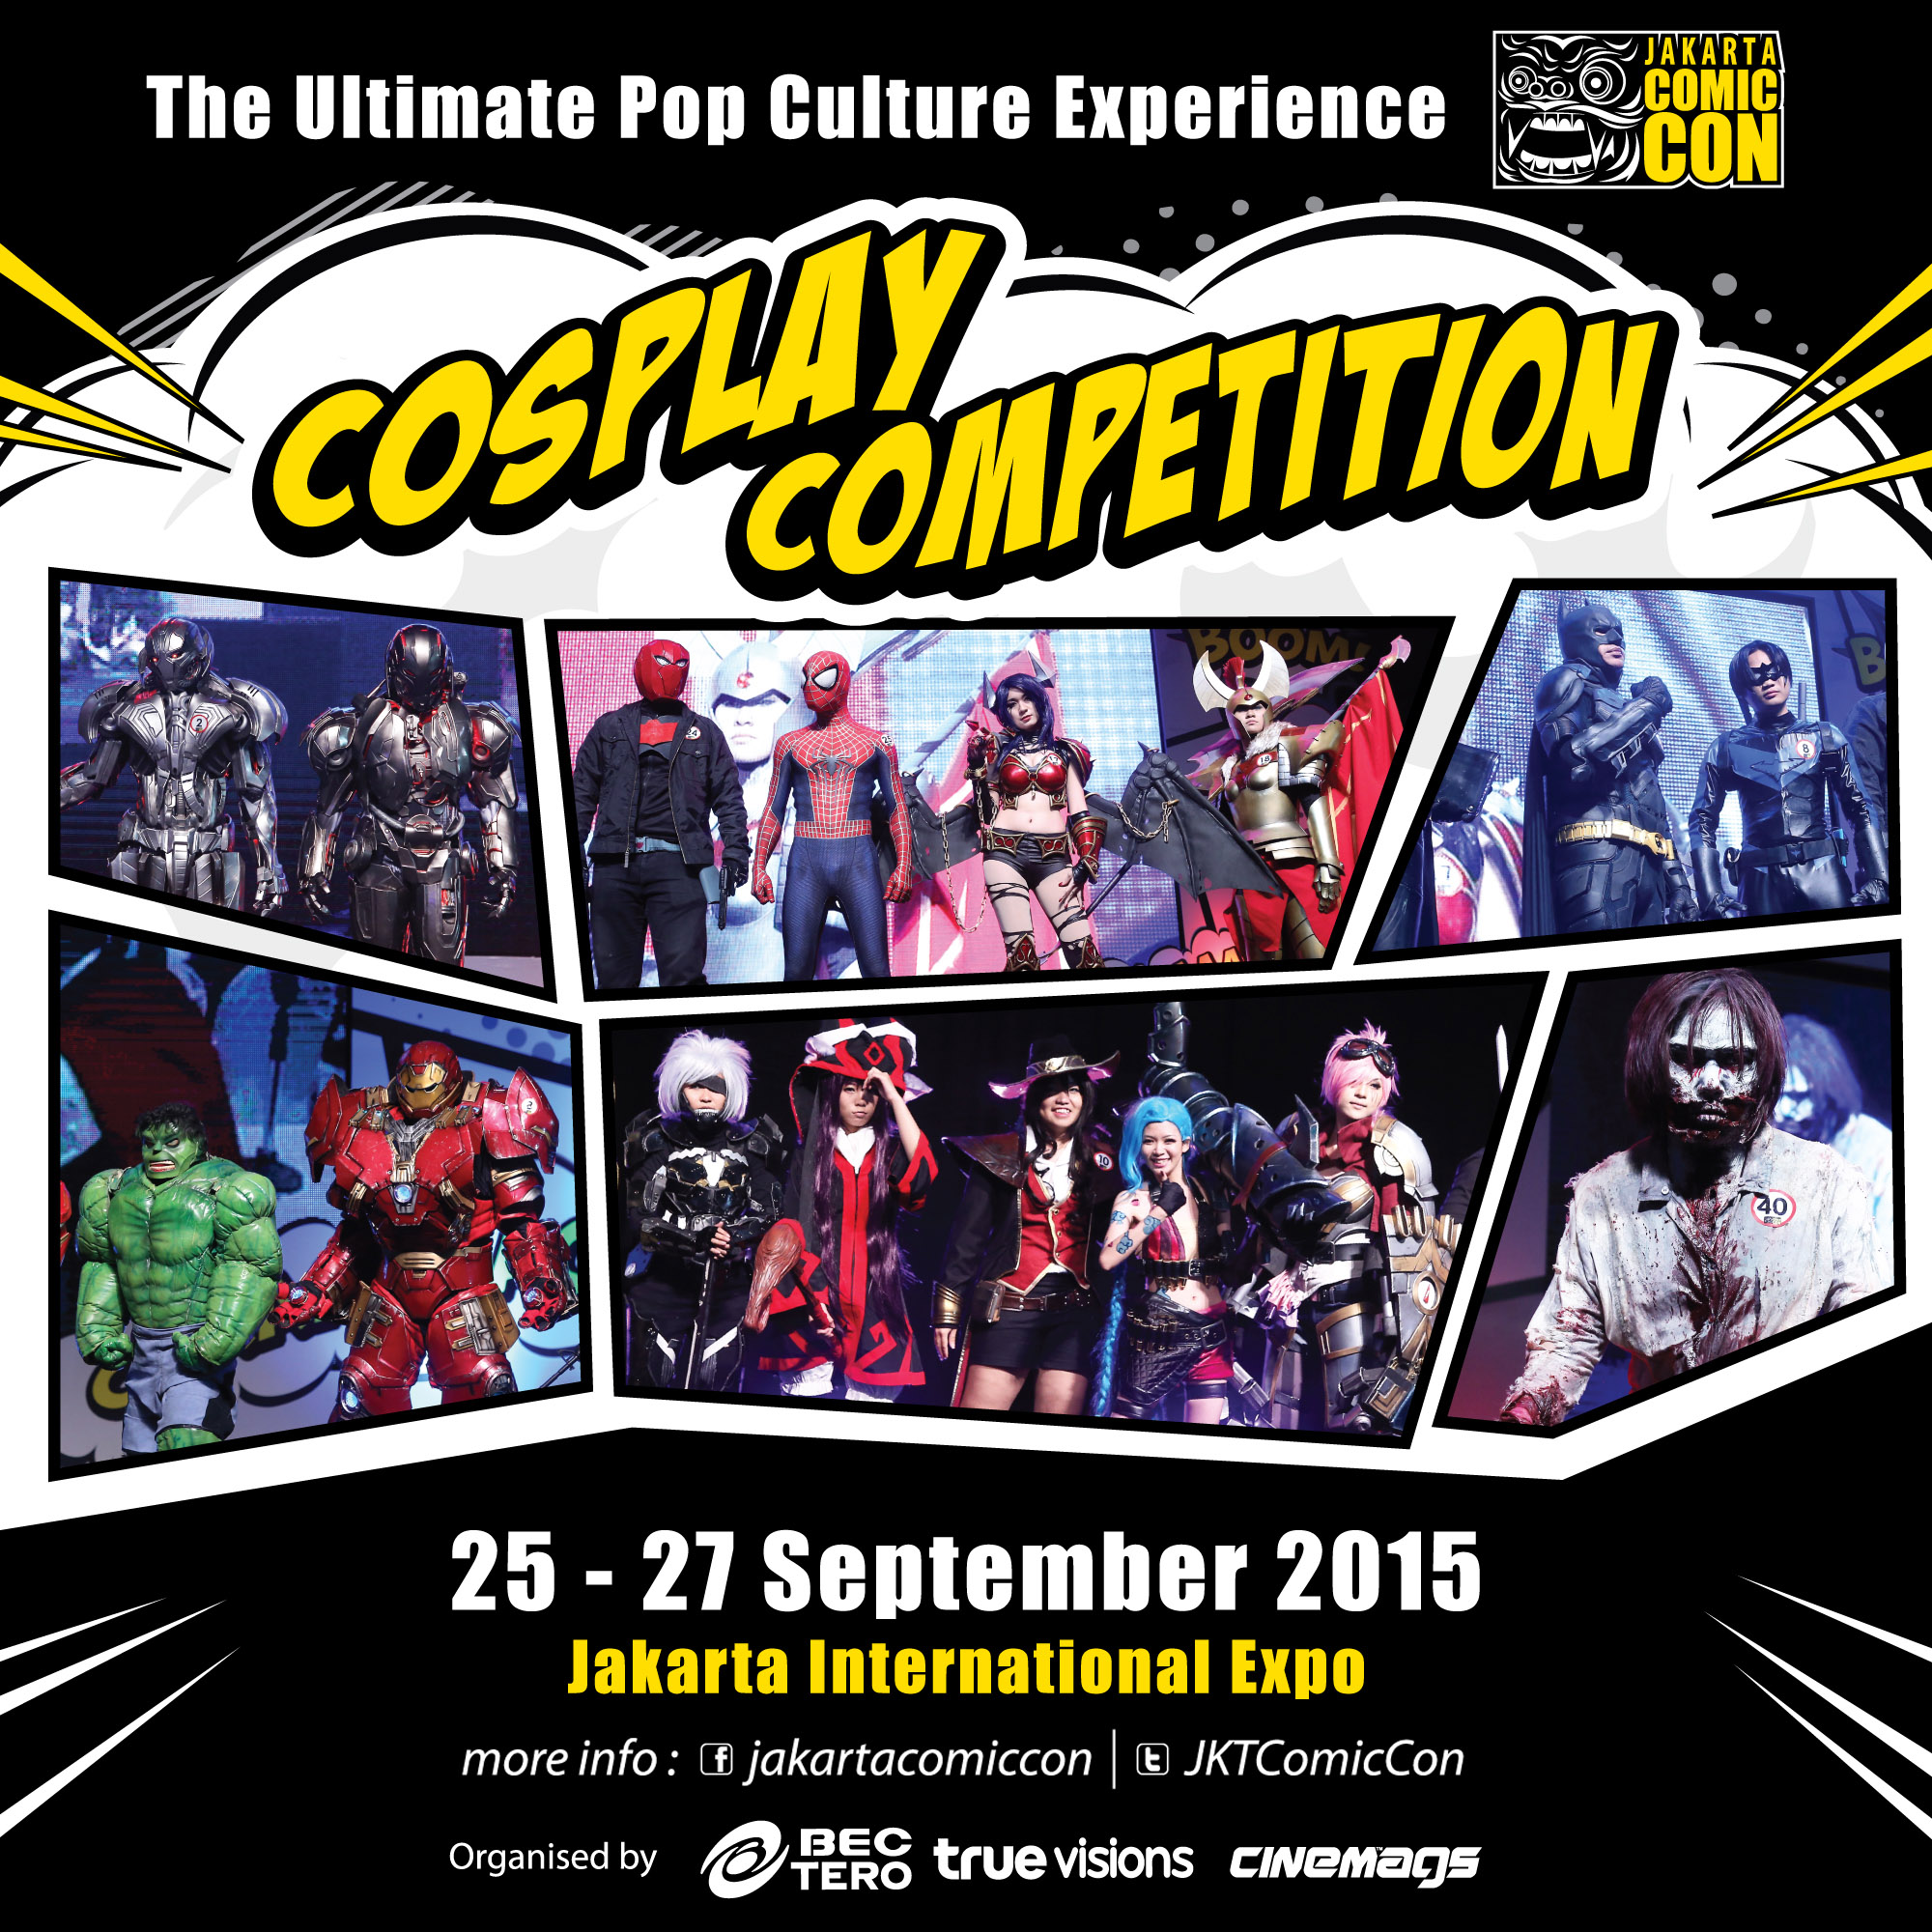 JAKARTA COMIC CON COSPLAY CONTEST 2015